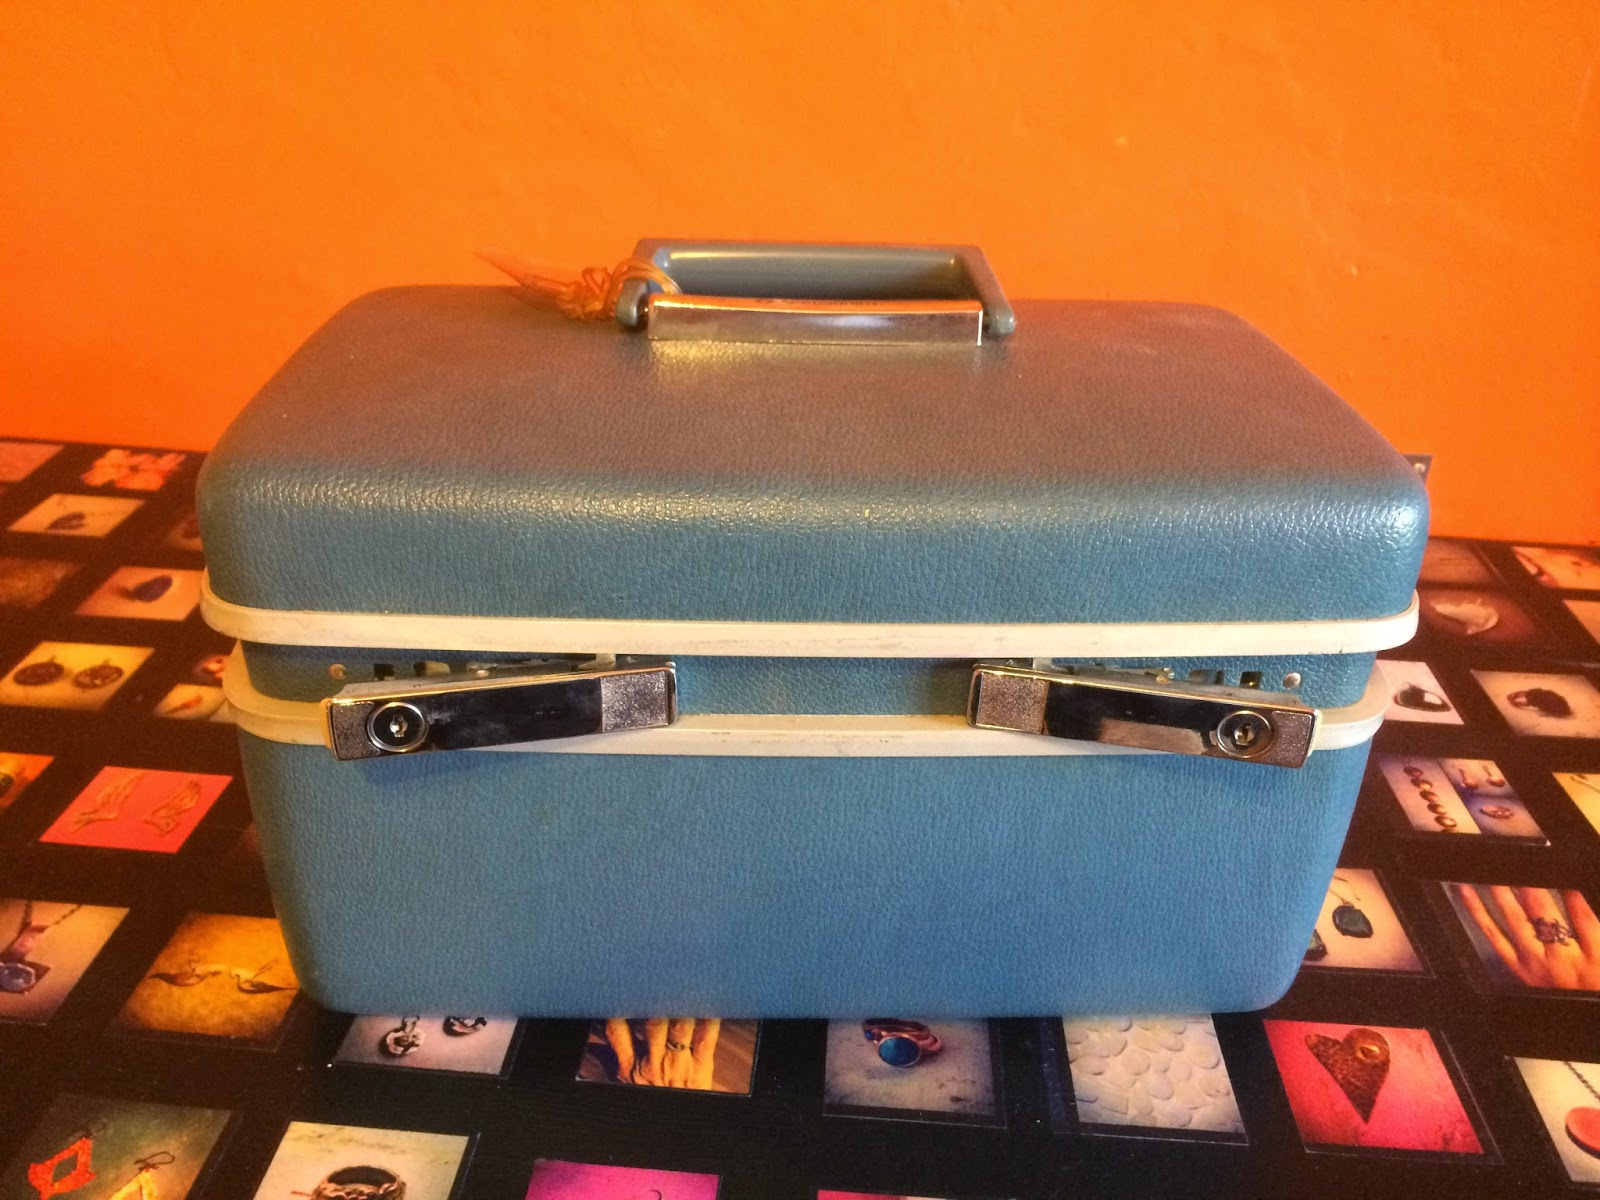 Blue vintage luggage case used as a toolbox for keeping jewelry supplies and tools in.